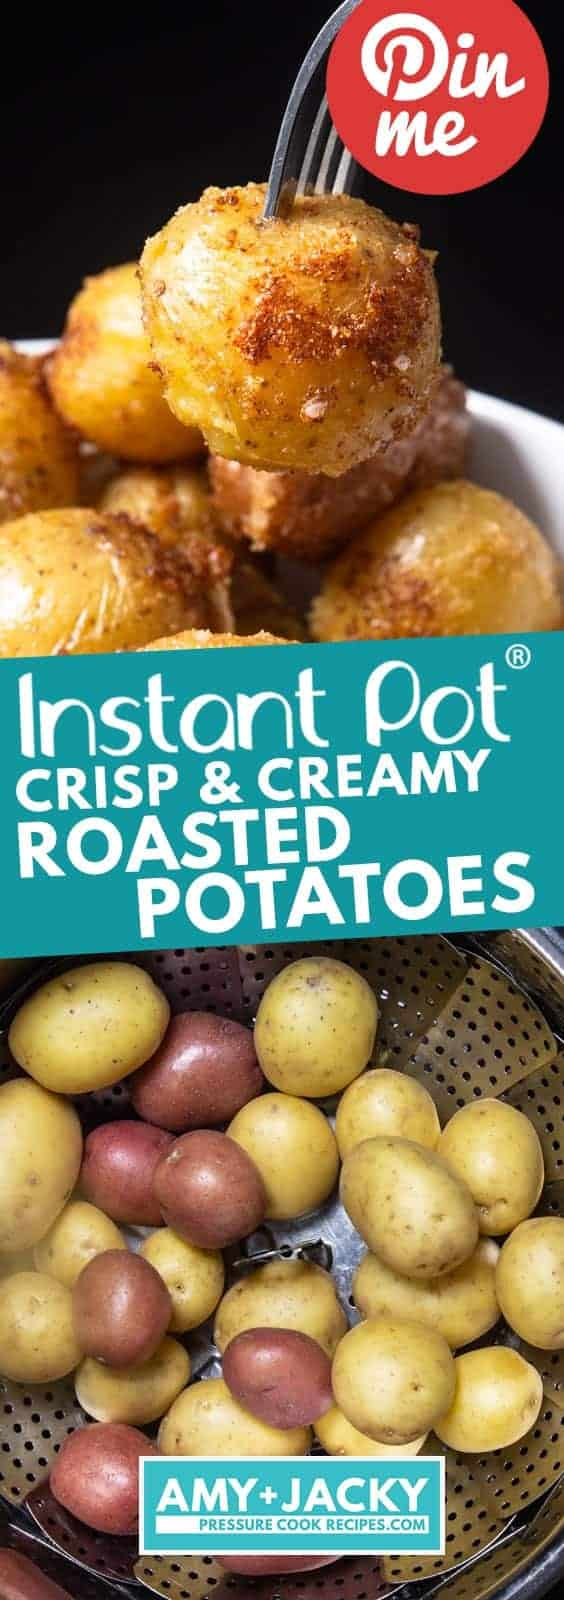 Instant Pot Roasted Potatoes | Instapot Roasted Potatoes | Pressure Cooker Roasted Potatoes | Instant Pot Baby Potatoes | Instapot Baby Potatoes | Pressure Cooker Baby Potatoes | Instant Pot Potatoes | Pressure Cooker Potatoes #instantpot #pressurecooker #recipes #side #easy #healthy #vegetarian